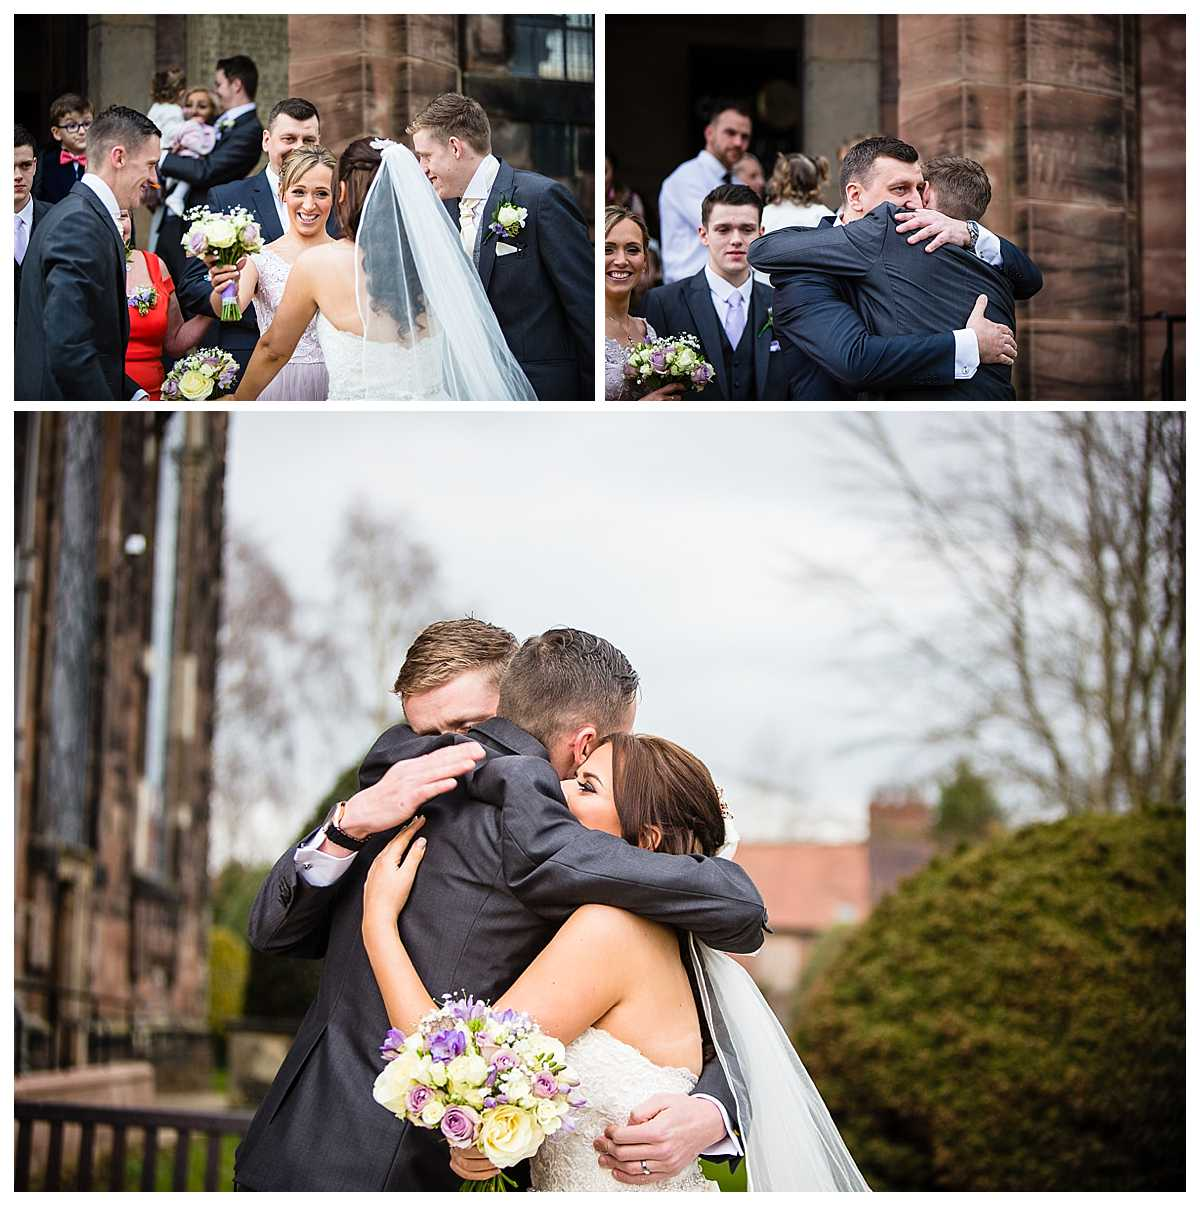 lots of beautiful expressions as guest come out of church and embrace the bride and groom outside